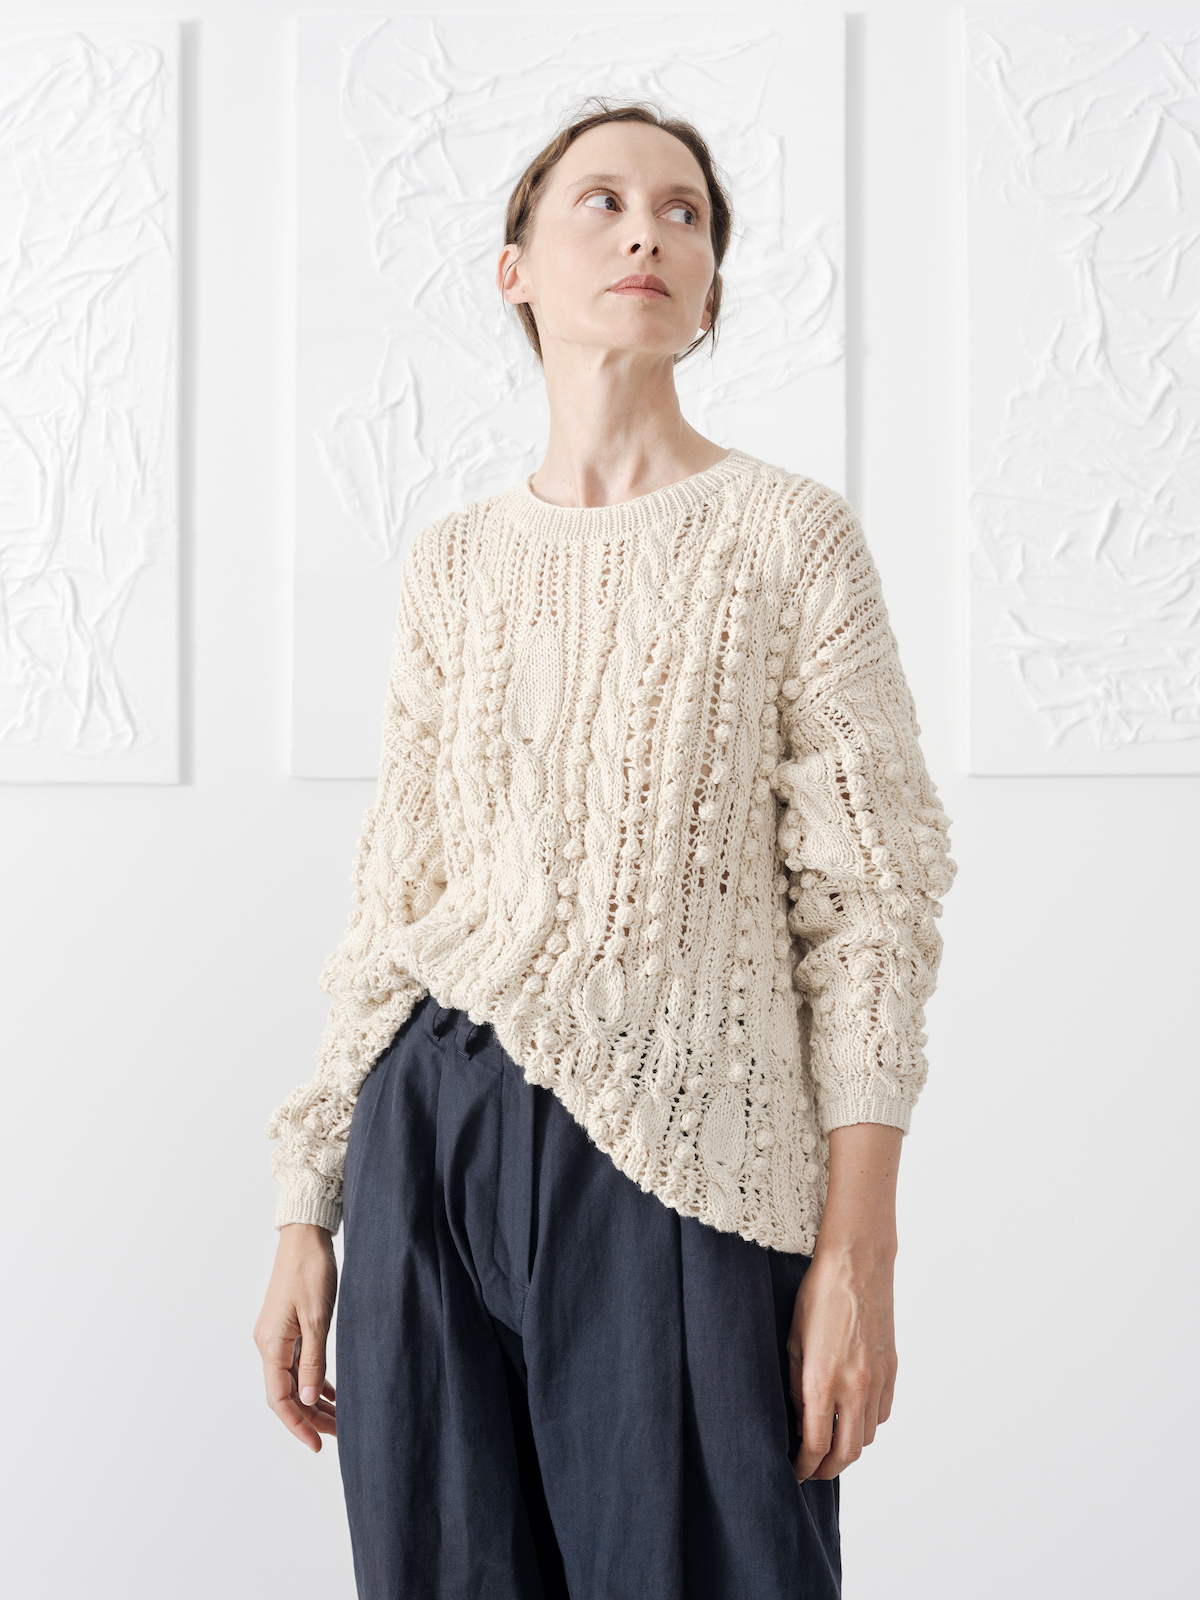 Knots & ropes sweater | KNITBRARY